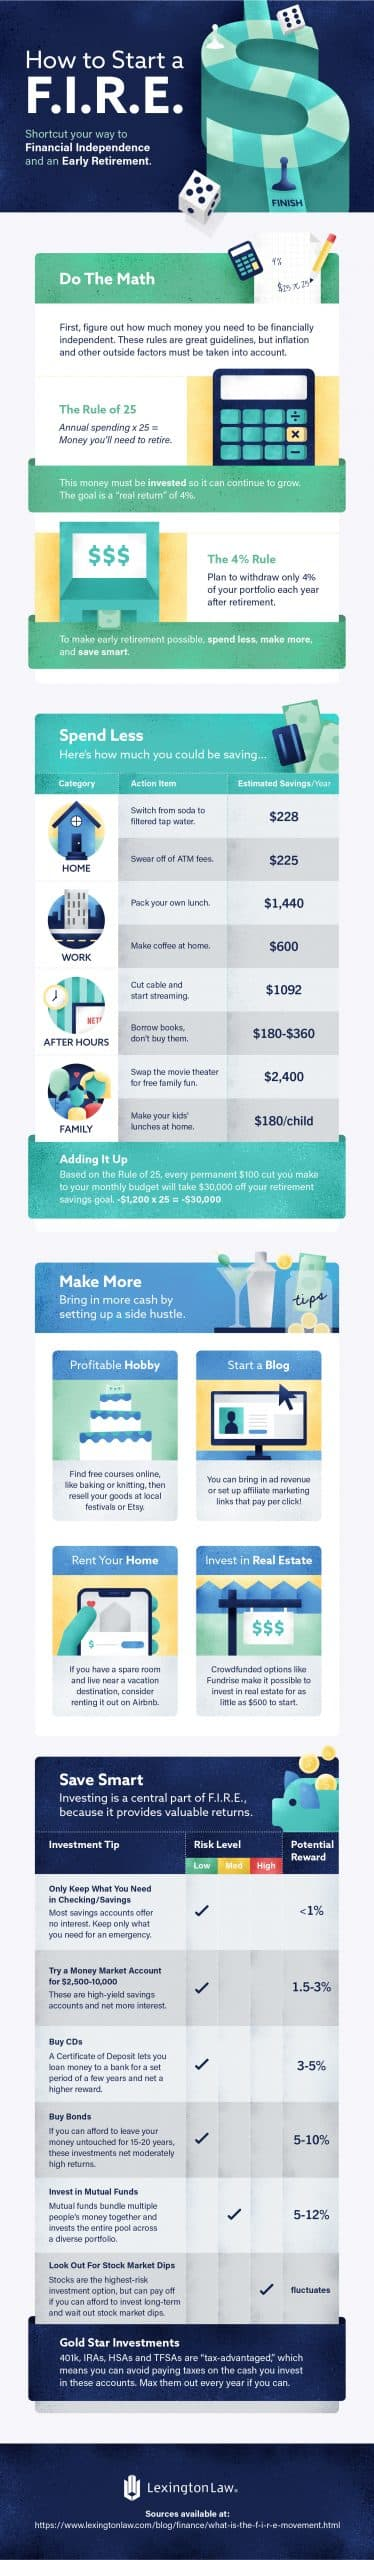 Ultimate Guide To The F.I.R.E Movement: What It Is, How To Do It, + Should You?, financial independence retire early infographic for saving money in life for retirement with passive income and healthy personal finance tips, #earlyretirement, #retireearly, #firemovement